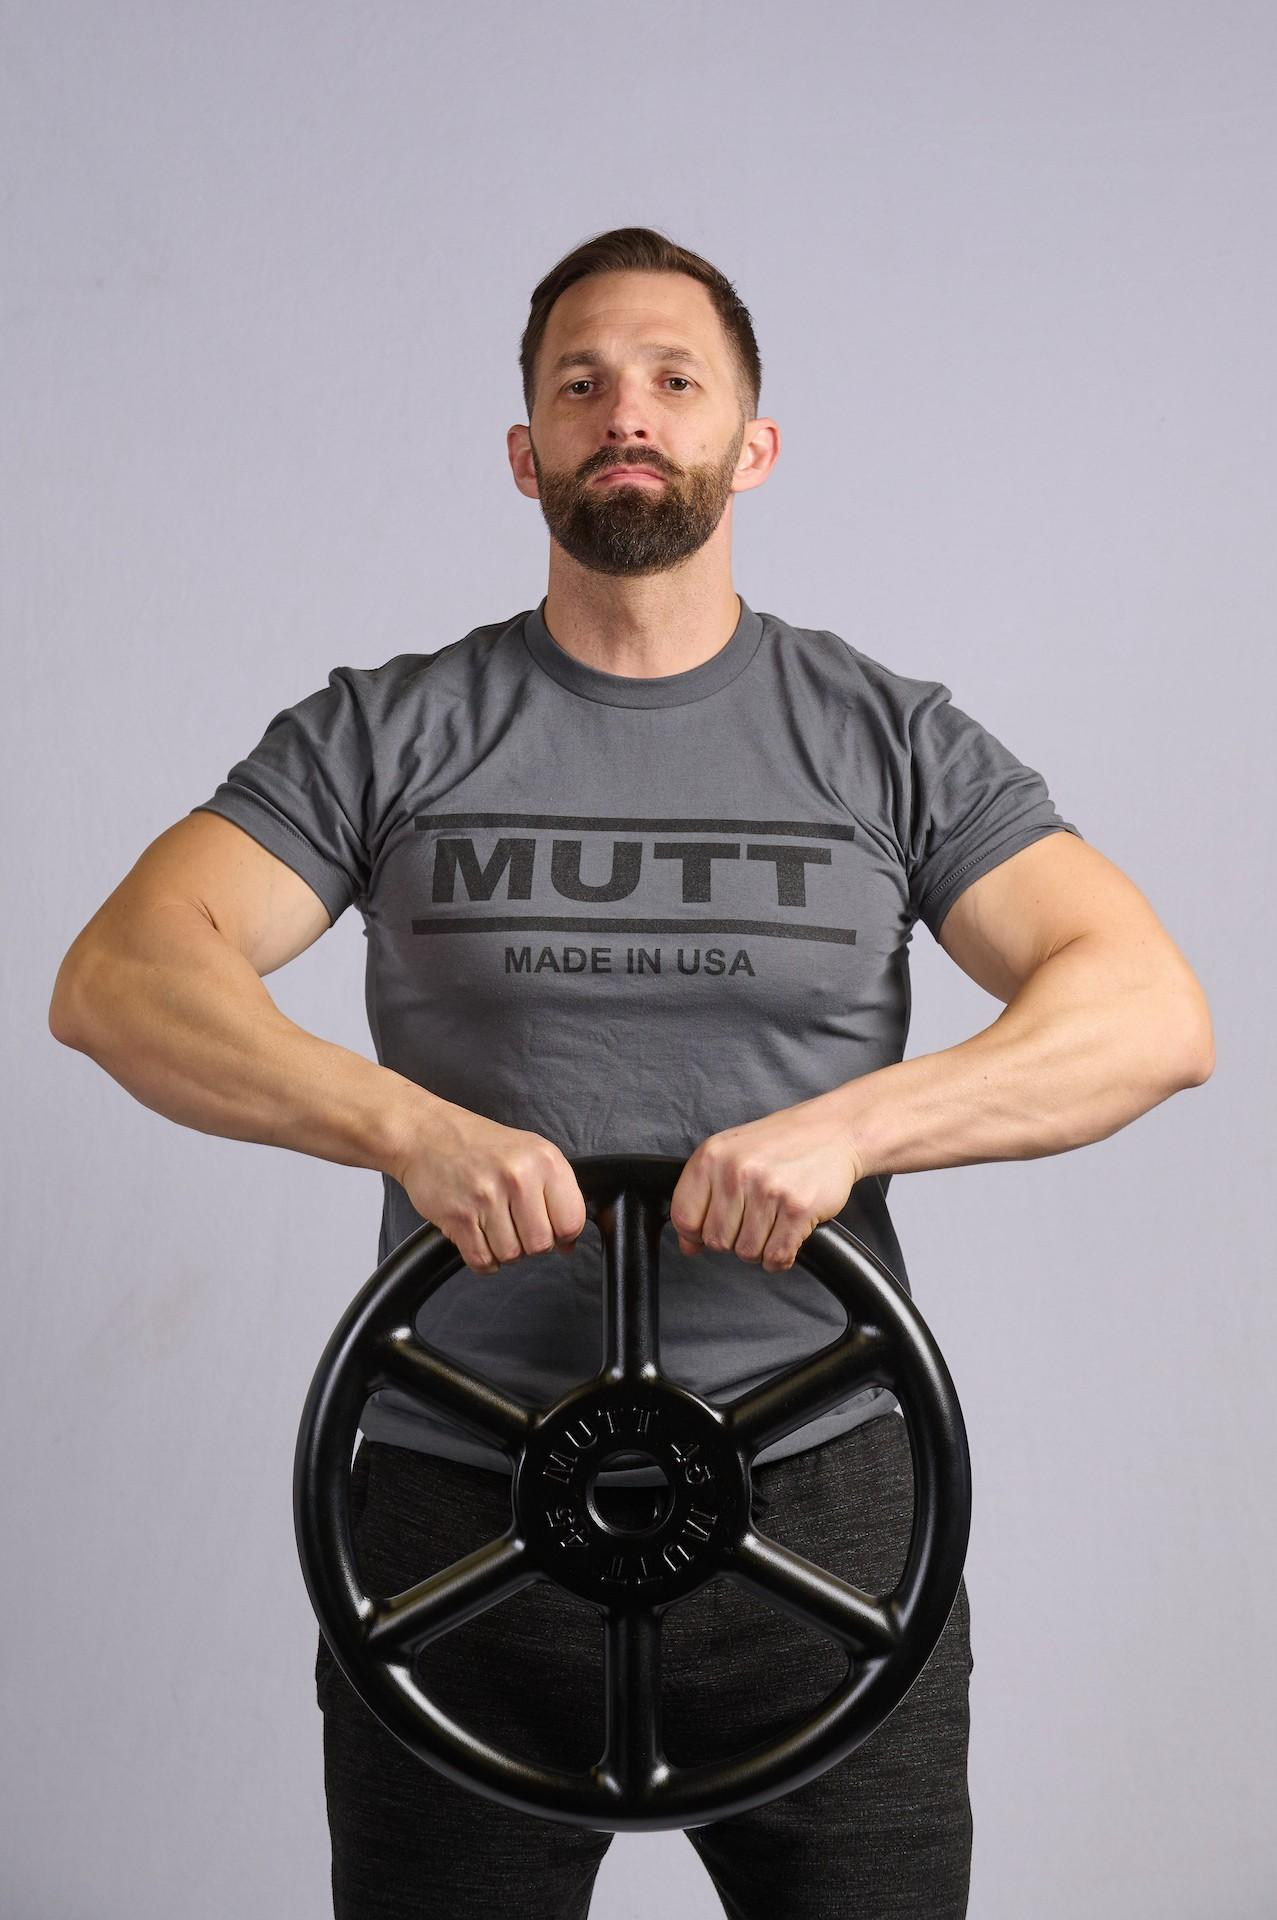 Upright Rows with 45lb MUTT Wheel - MUTT Made in USA